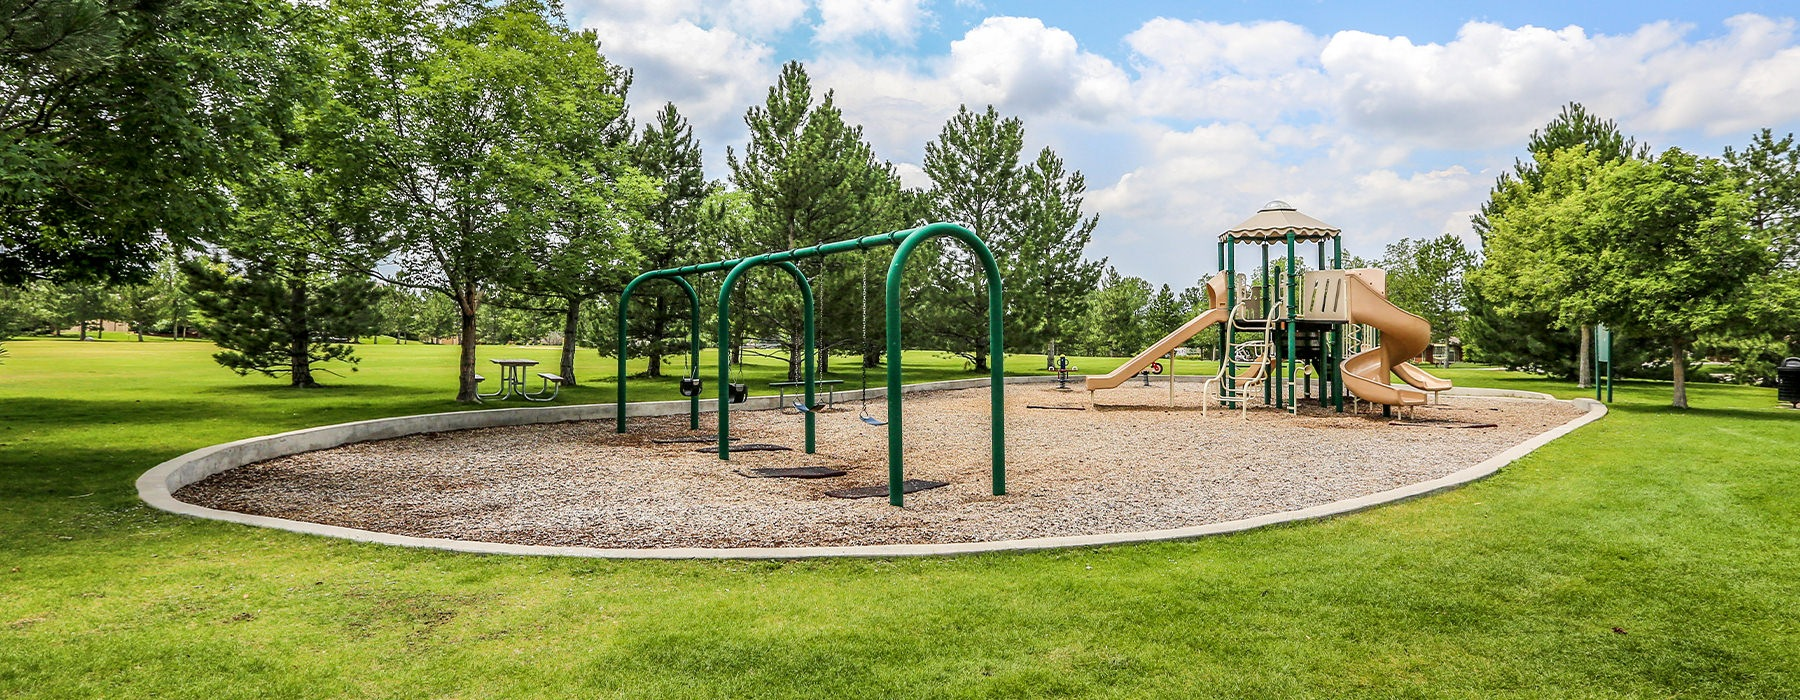 Large playground with swings and a play place surrounded by trees.